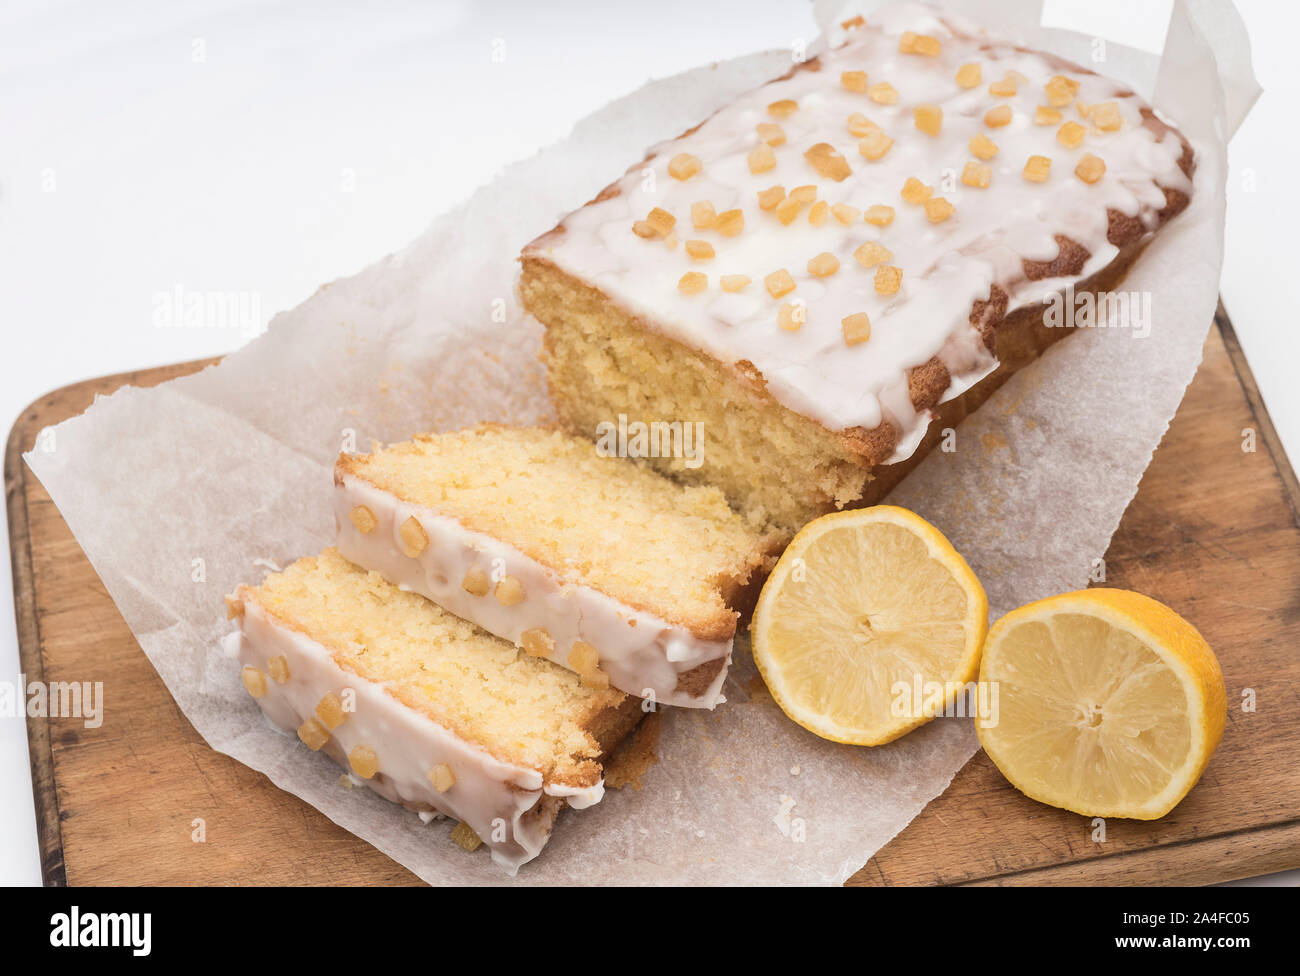 Sliced homemade iced and decorated lemon drizzle cake on a wooden chopping board. Stock Photo